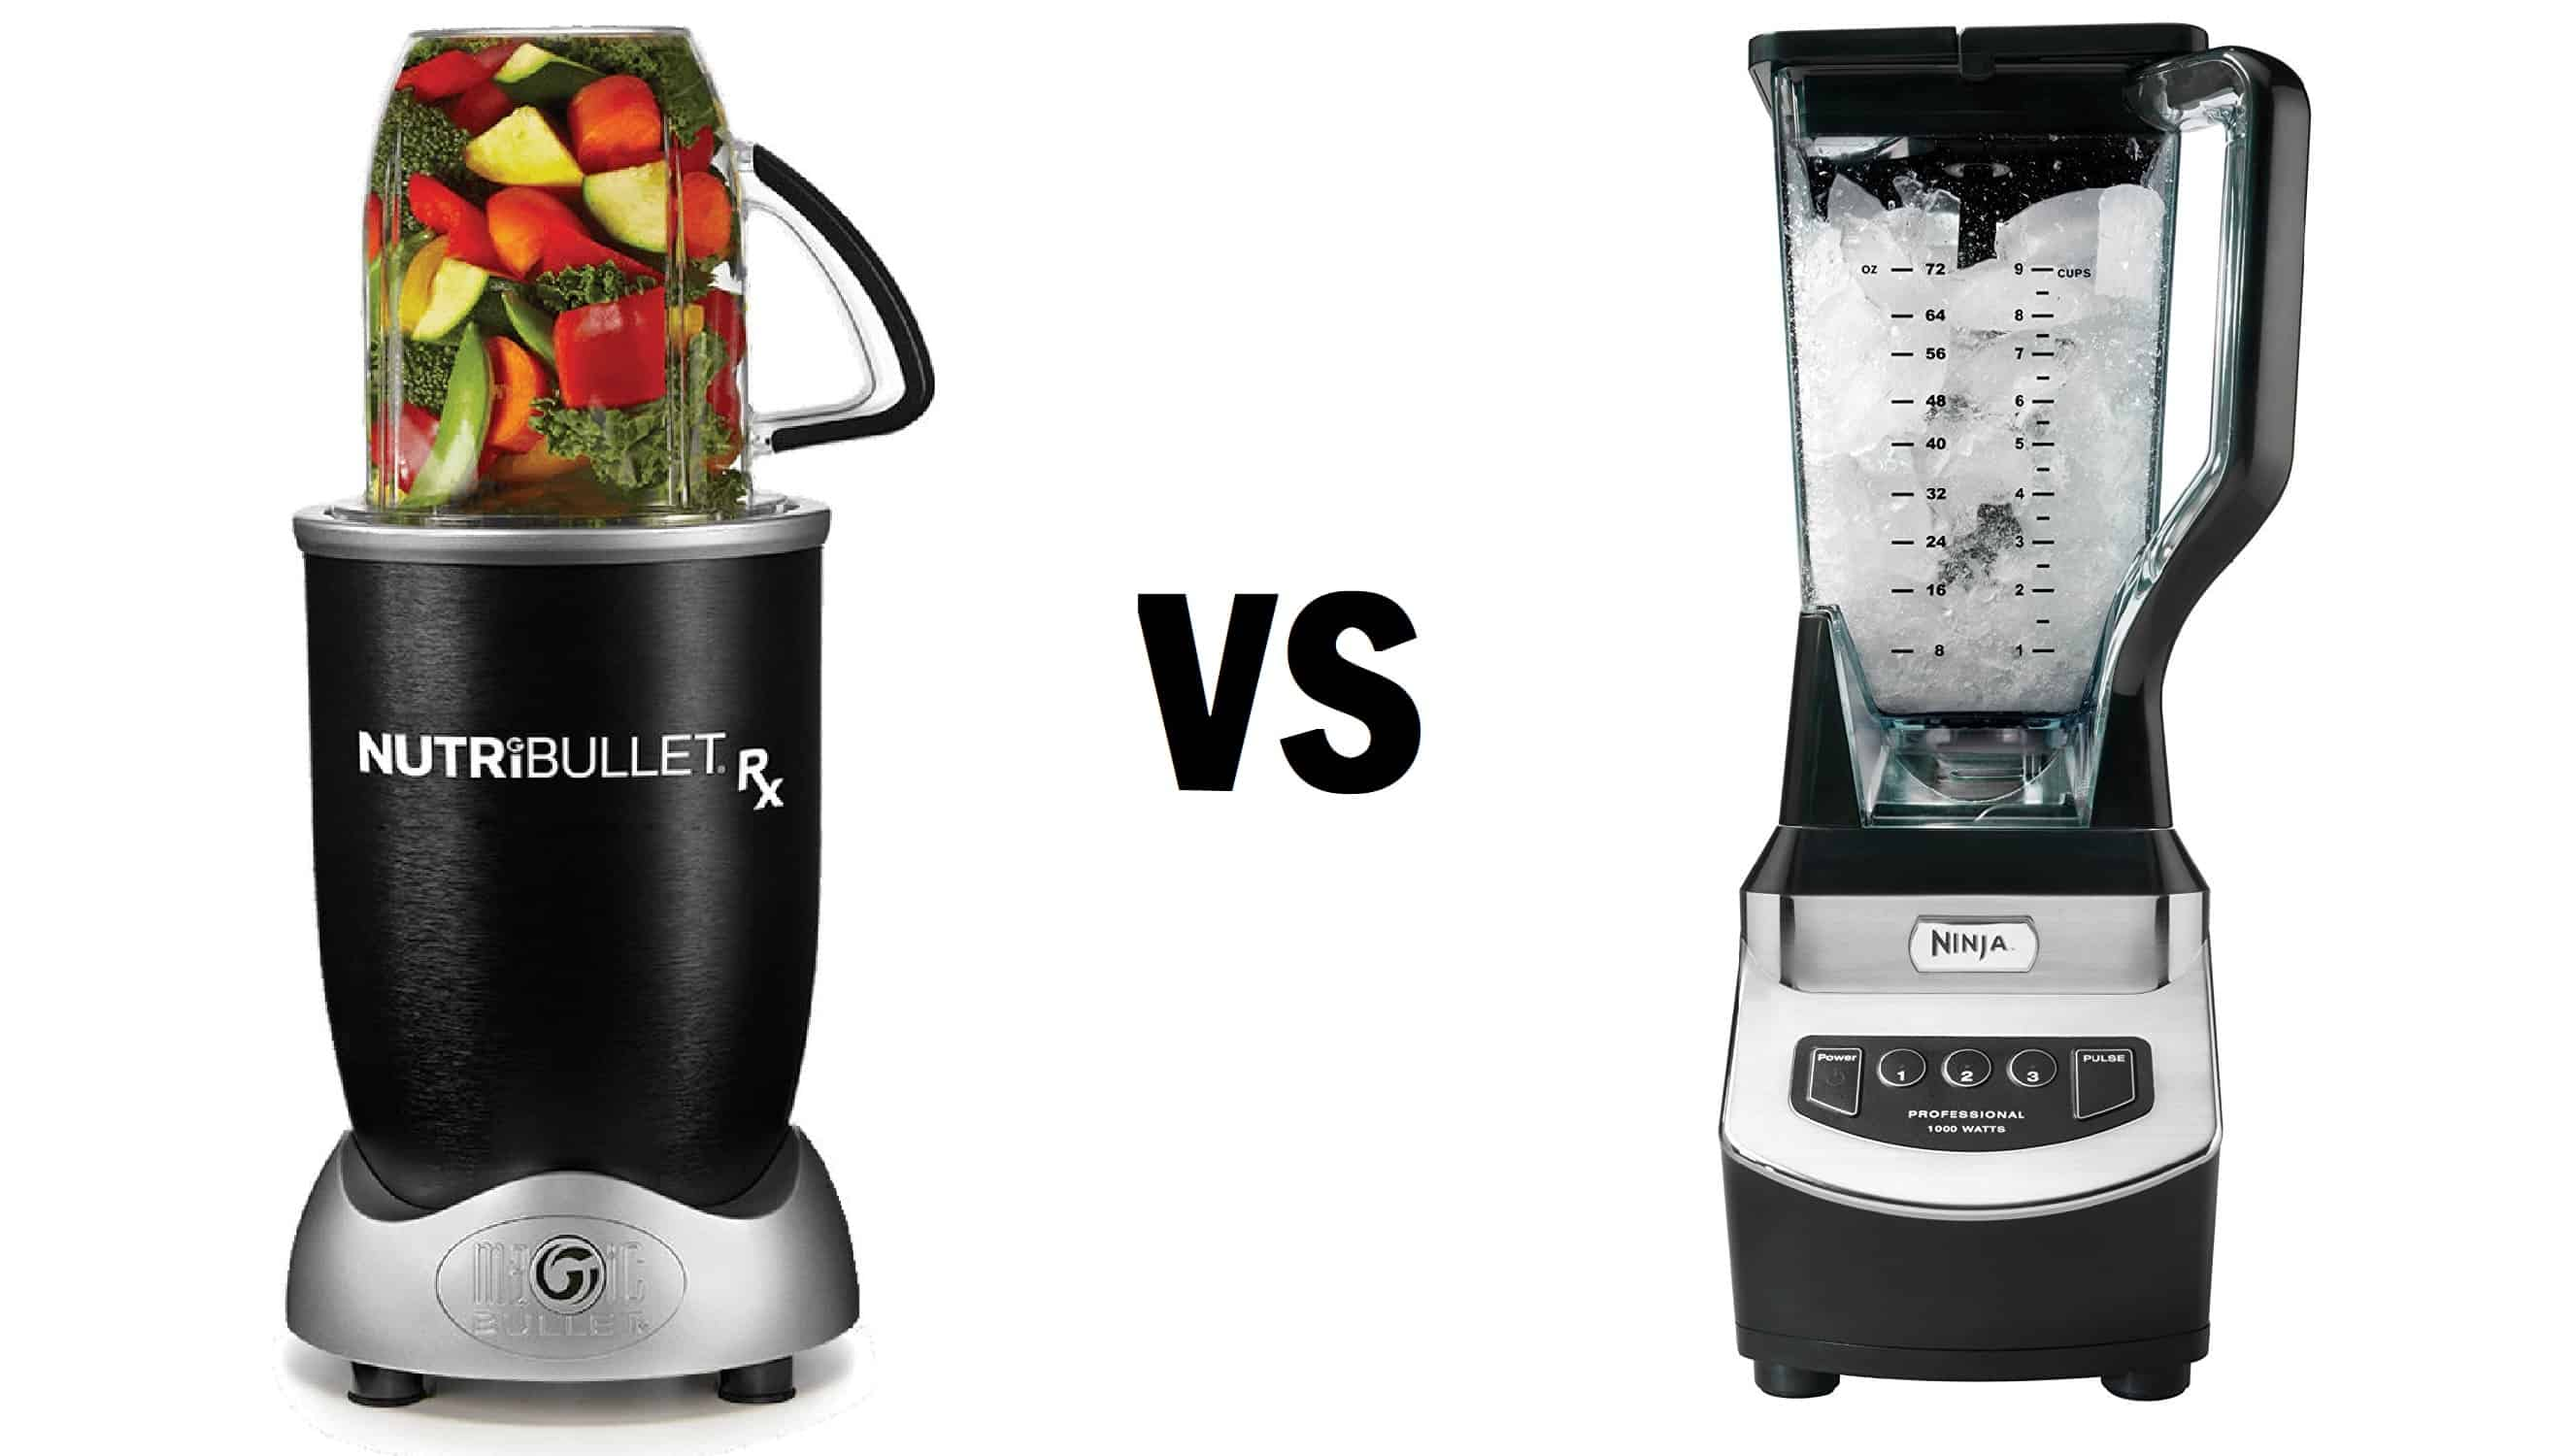 Best Blender 2019: Nutribullet vs Ninja